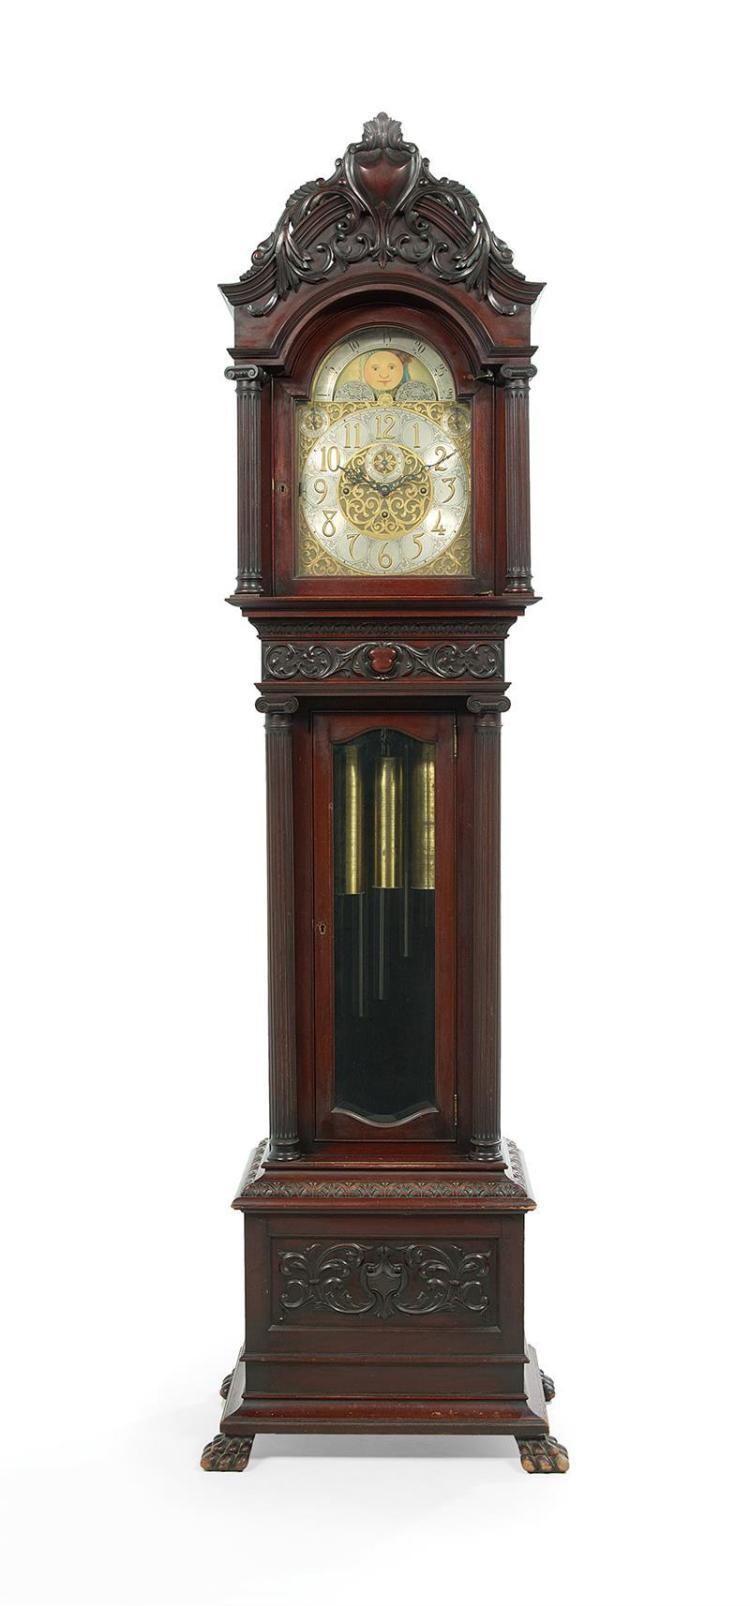 tall case clock dating Petite swedish gustavian tall case clock dating from the beginning of the 19th century the extravagantly decorated case retains most of.